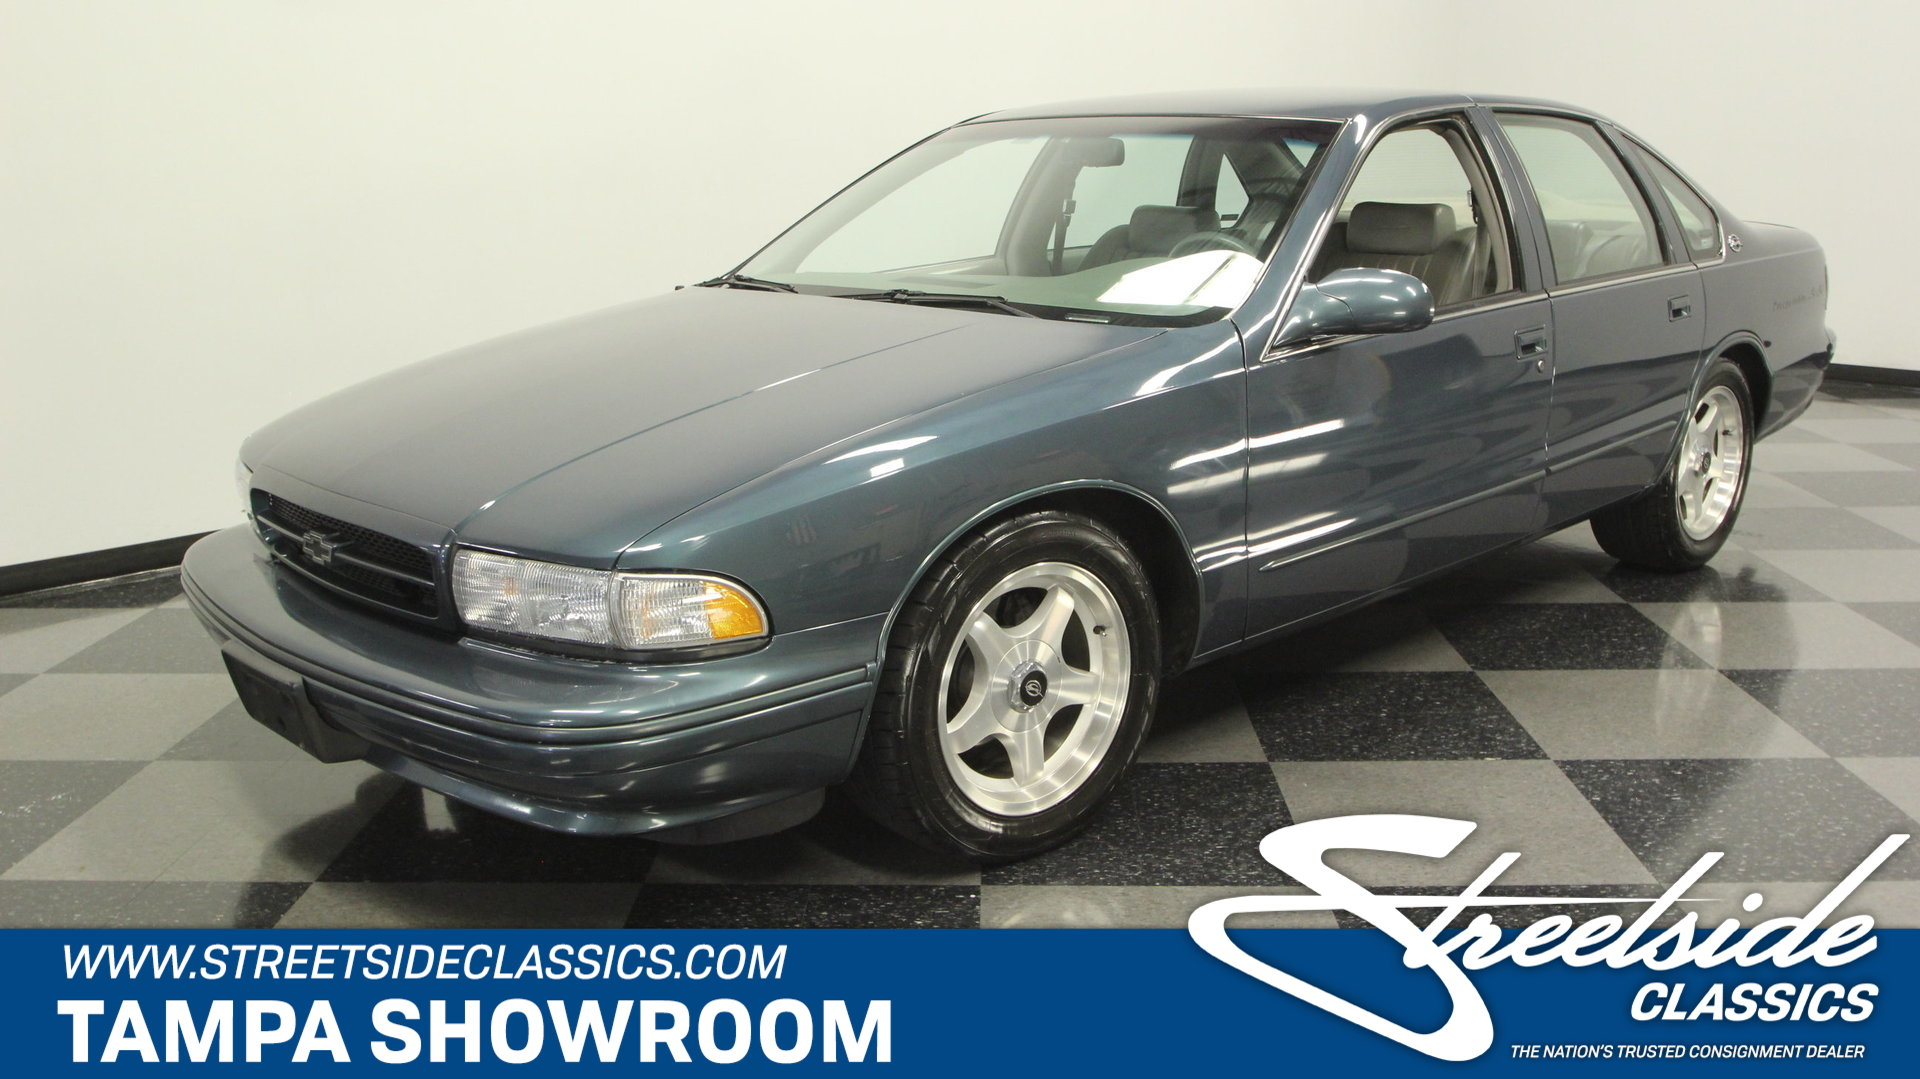 For Sale: 1995 Chevrolet Impala. Spincar view. Play Video